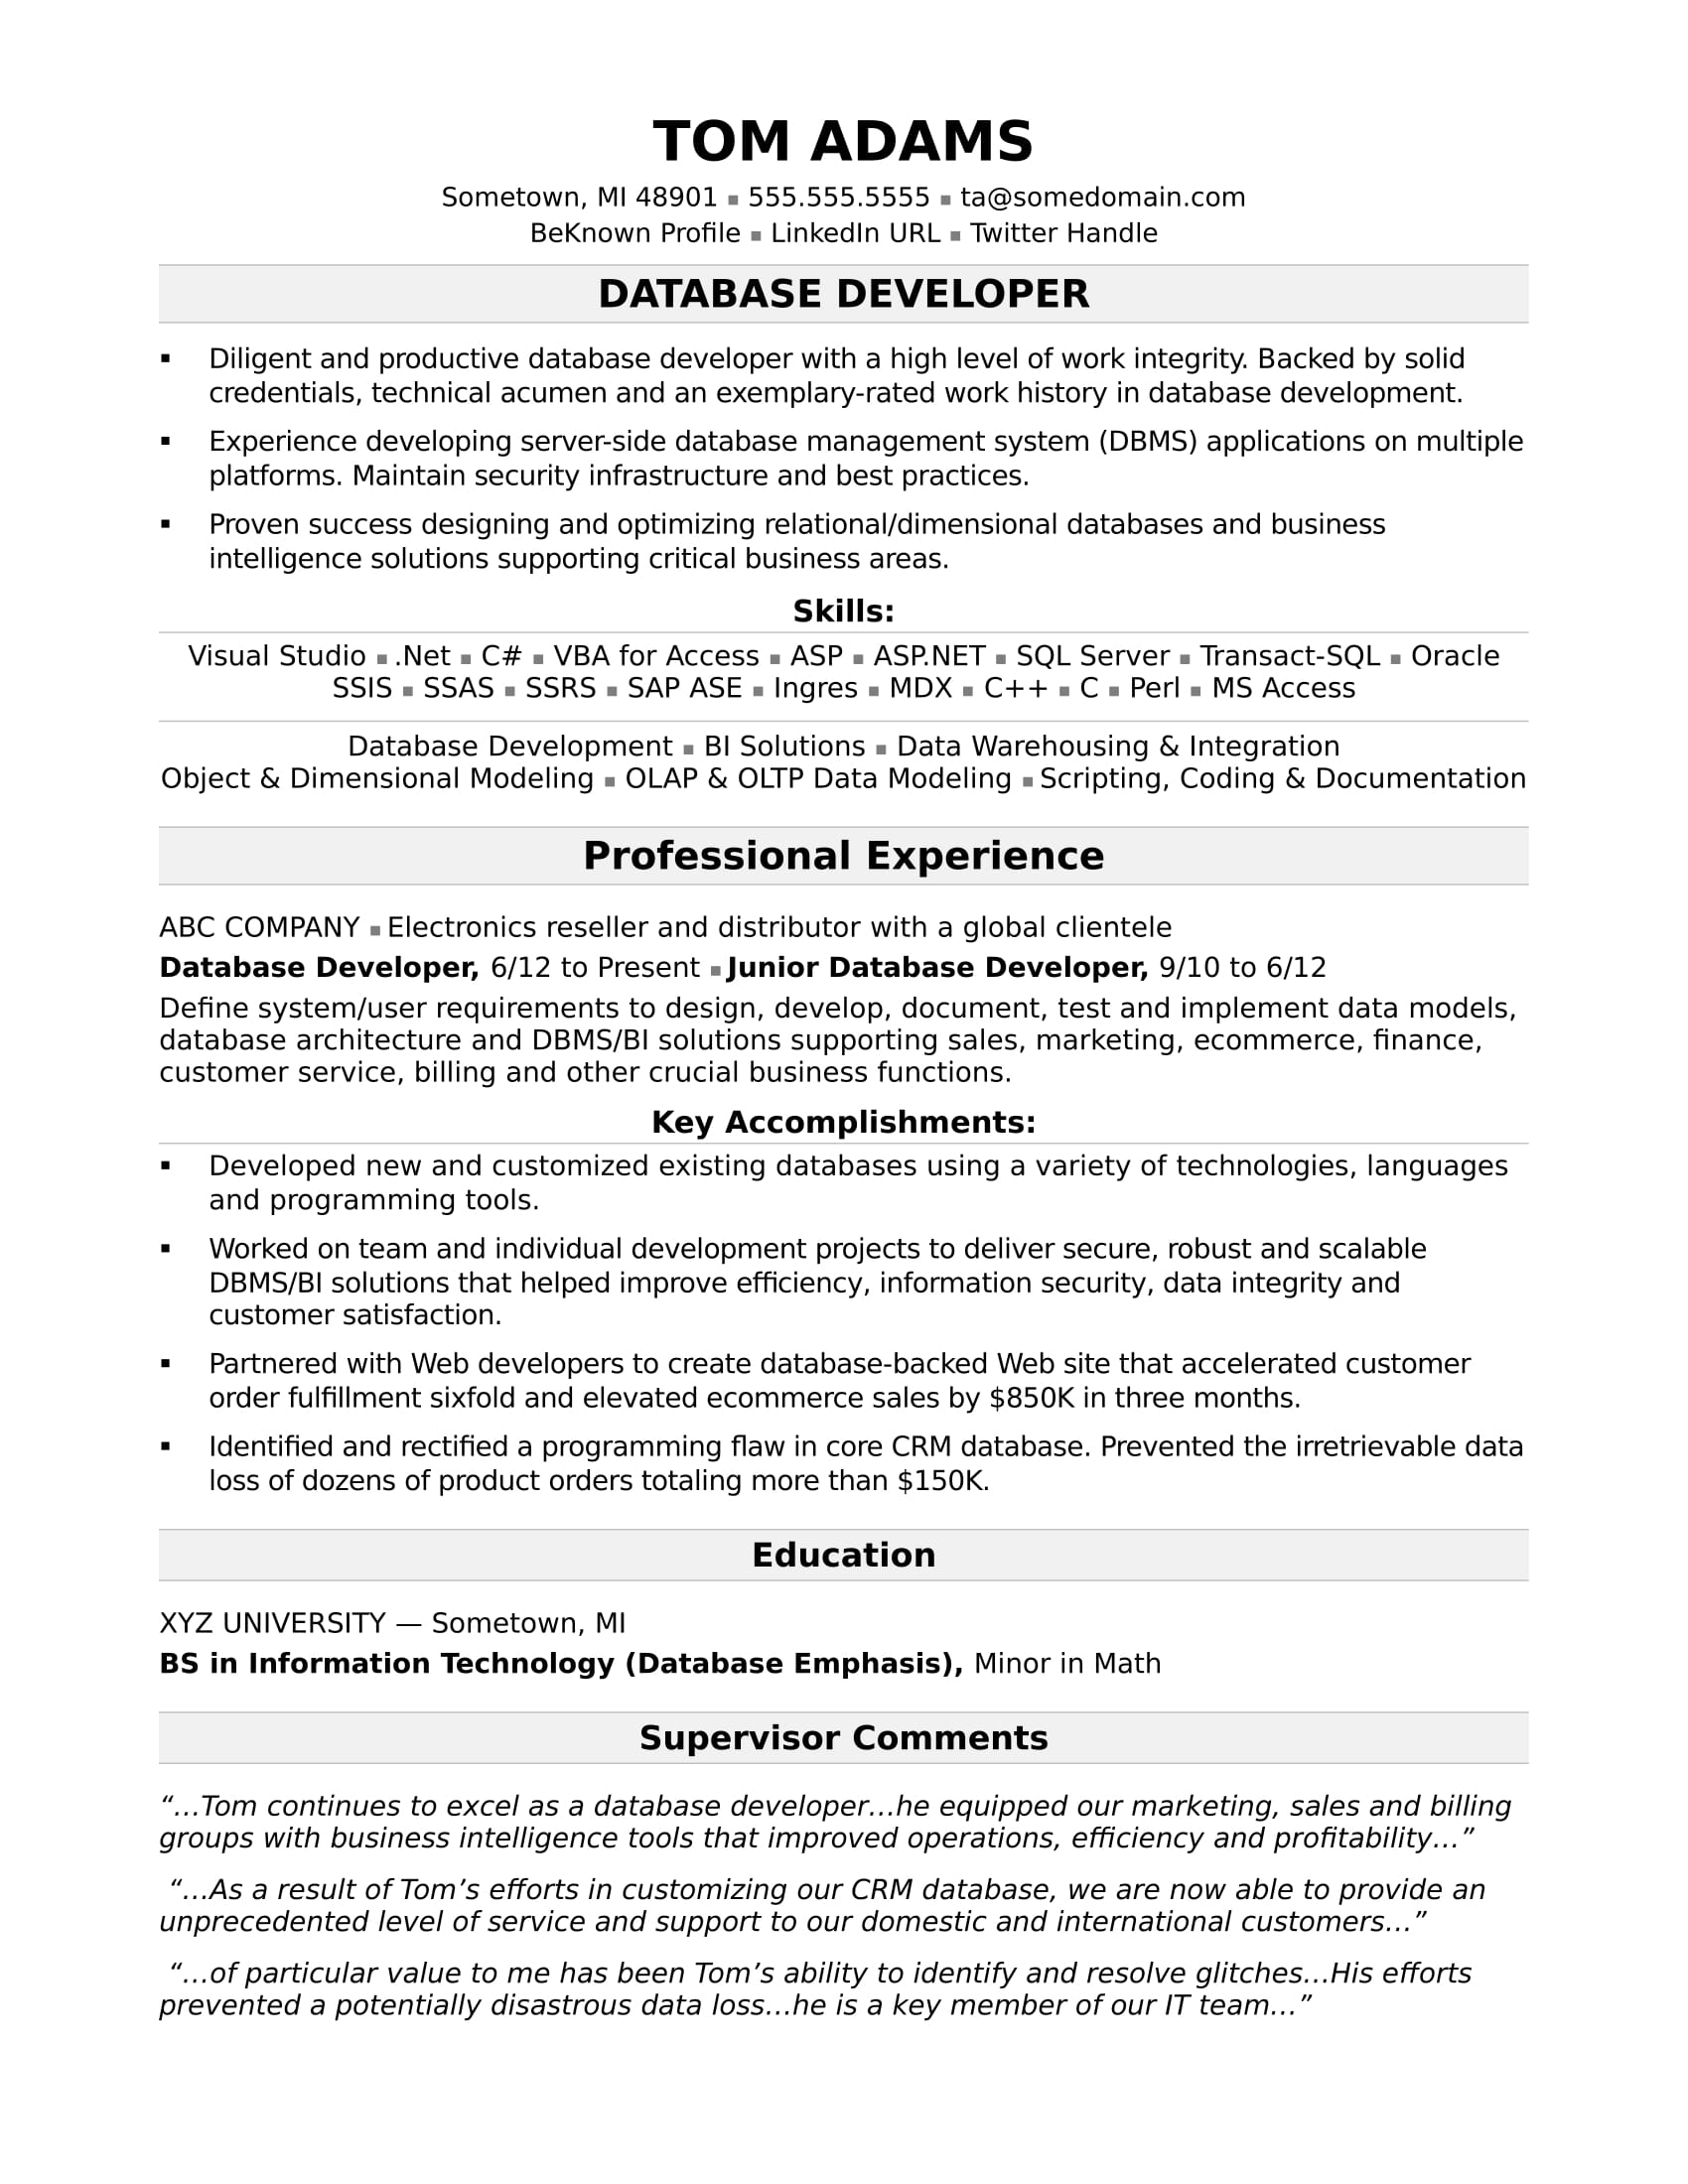 etl requirements template - sample resume for a midlevel it developer